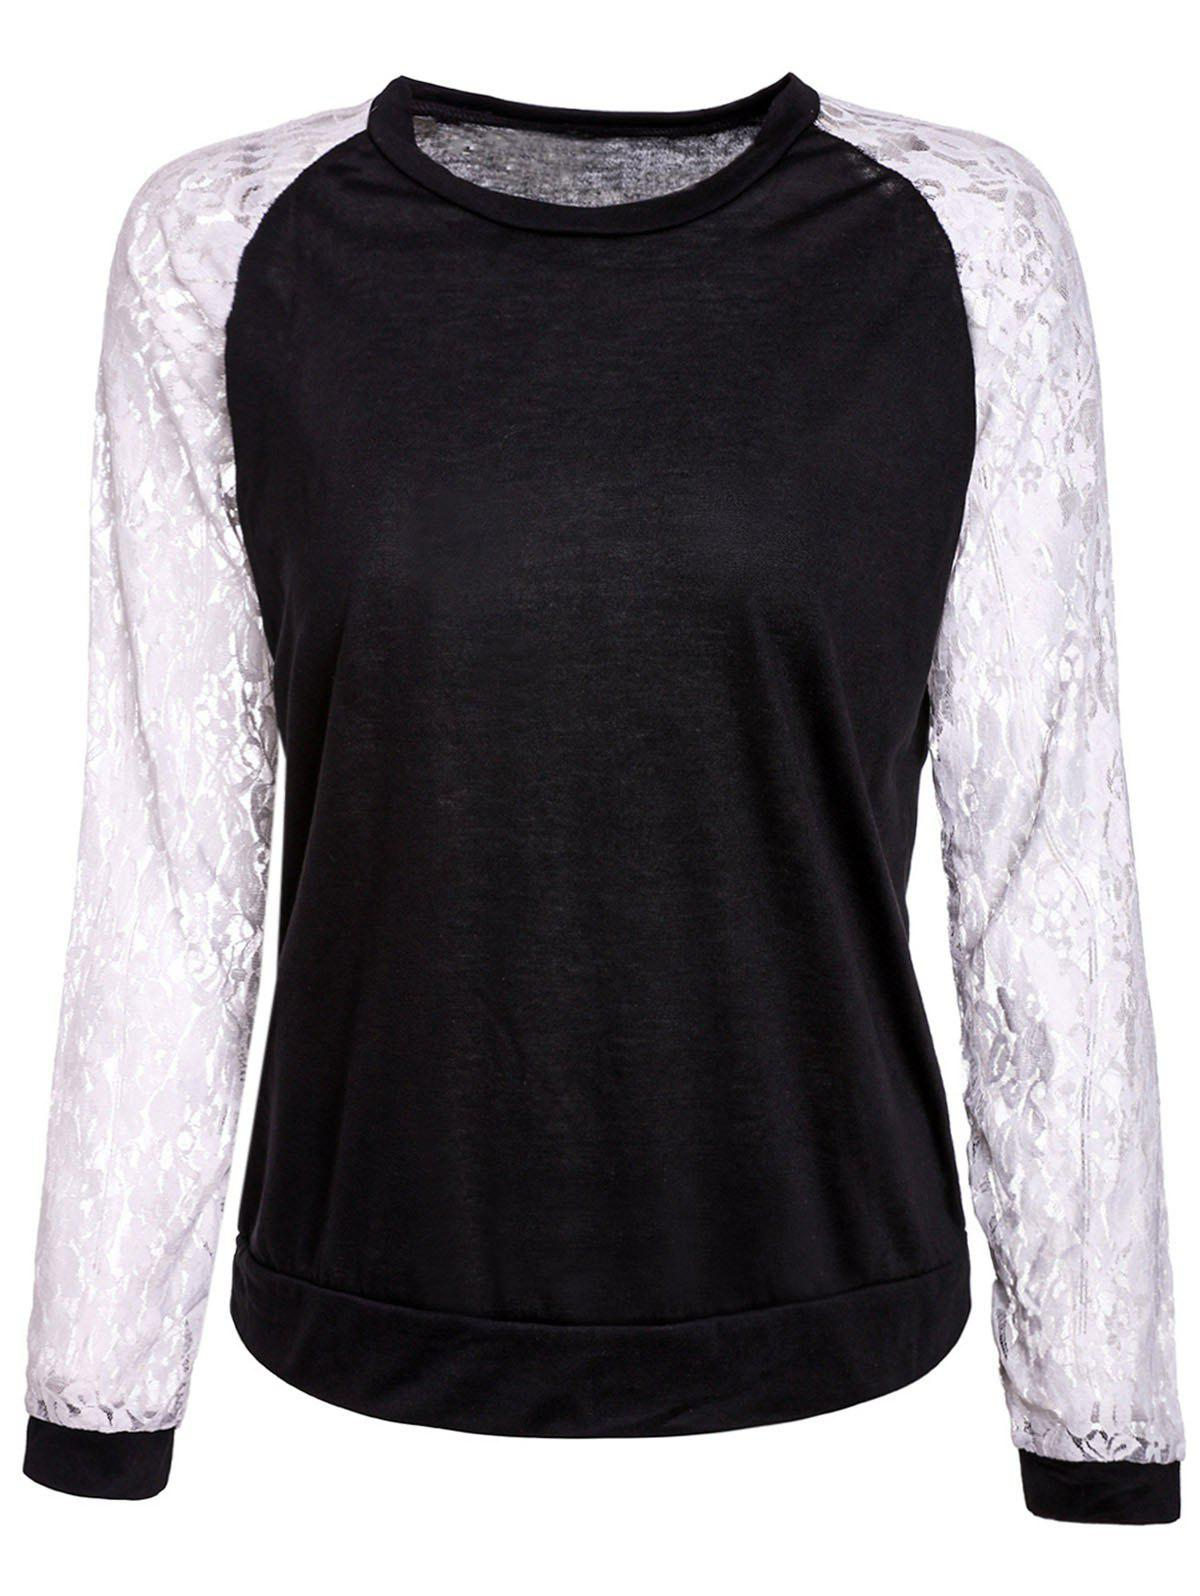 Sweet Lace Splicing Round Neck Long Sleeve Sweatshirt For Women - BLACK M